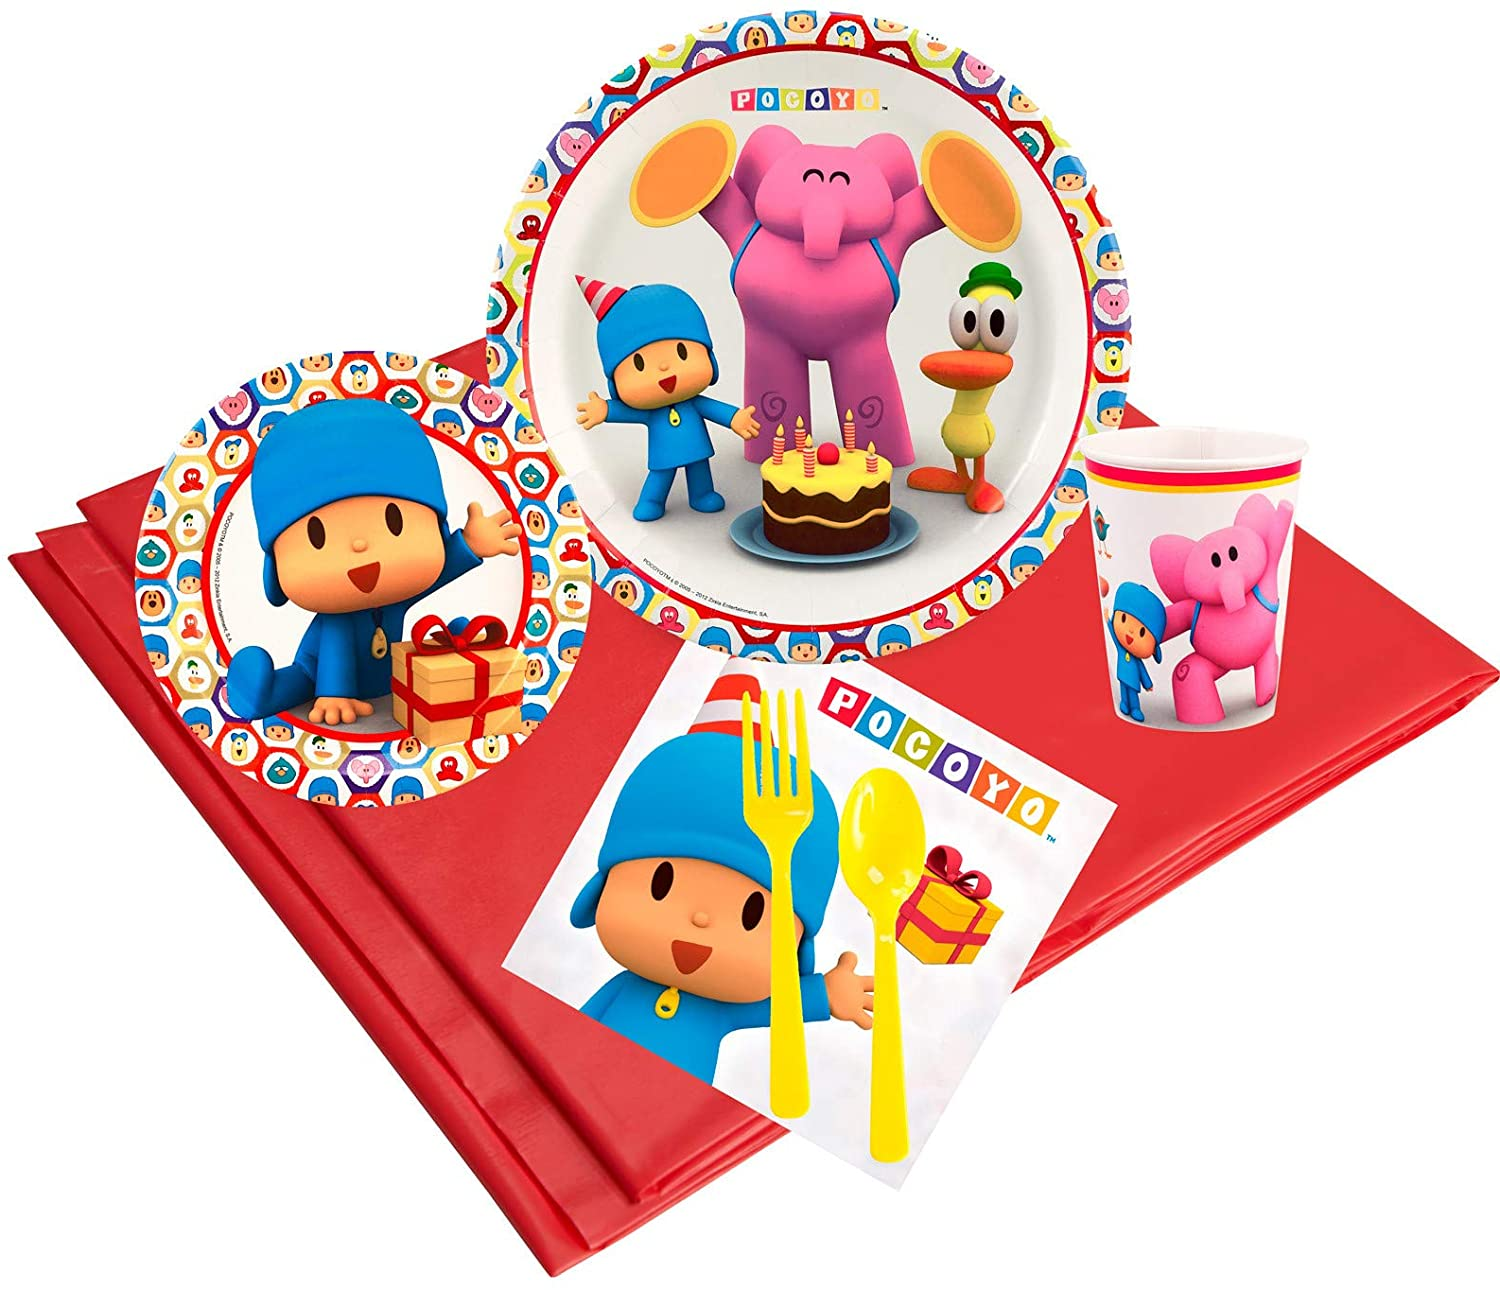 BirthdayExpress Pocoyo Children's Birthday Tableware Party Pack for 24 Guests, Multi-colored, One Size